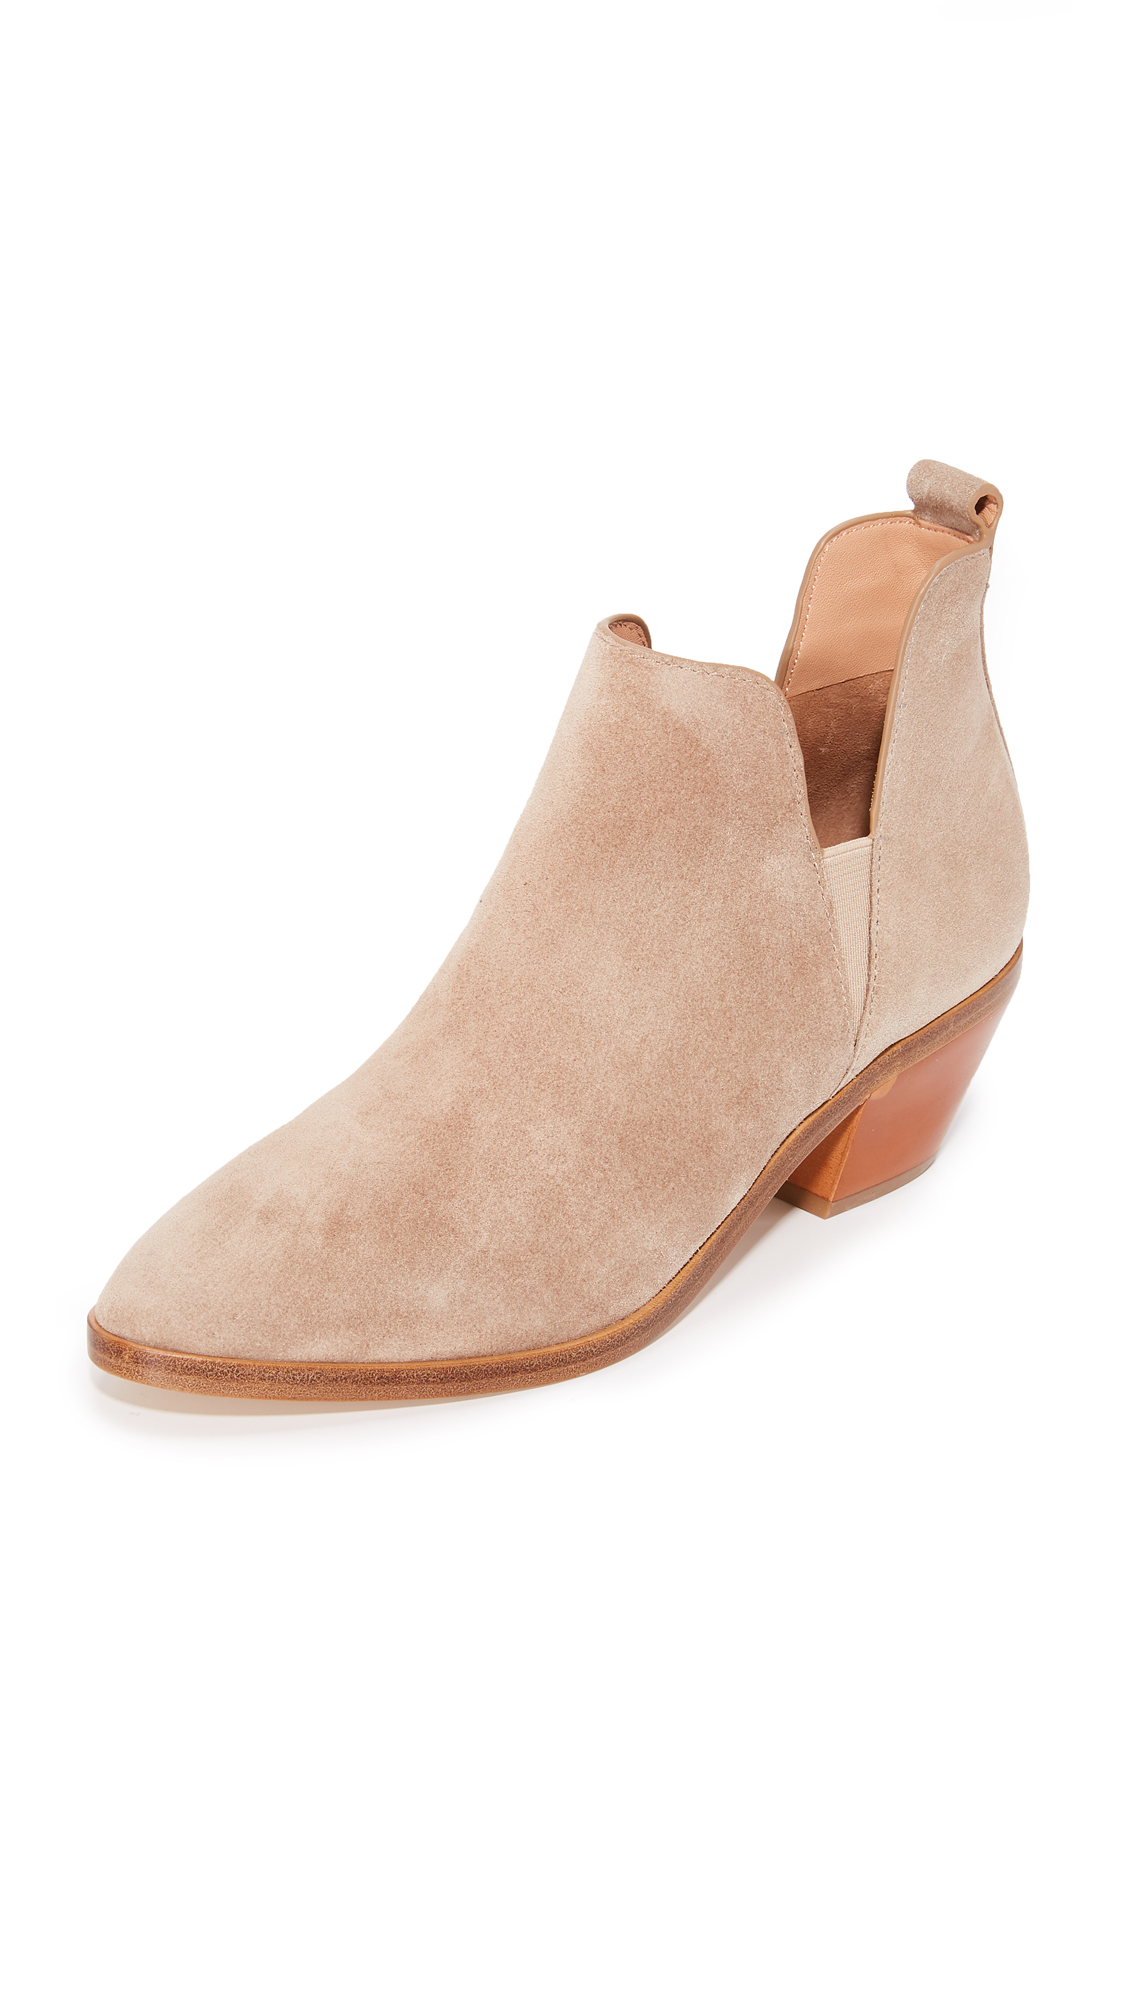 Sigerson Morrison Belin Suede Booties - Cloud